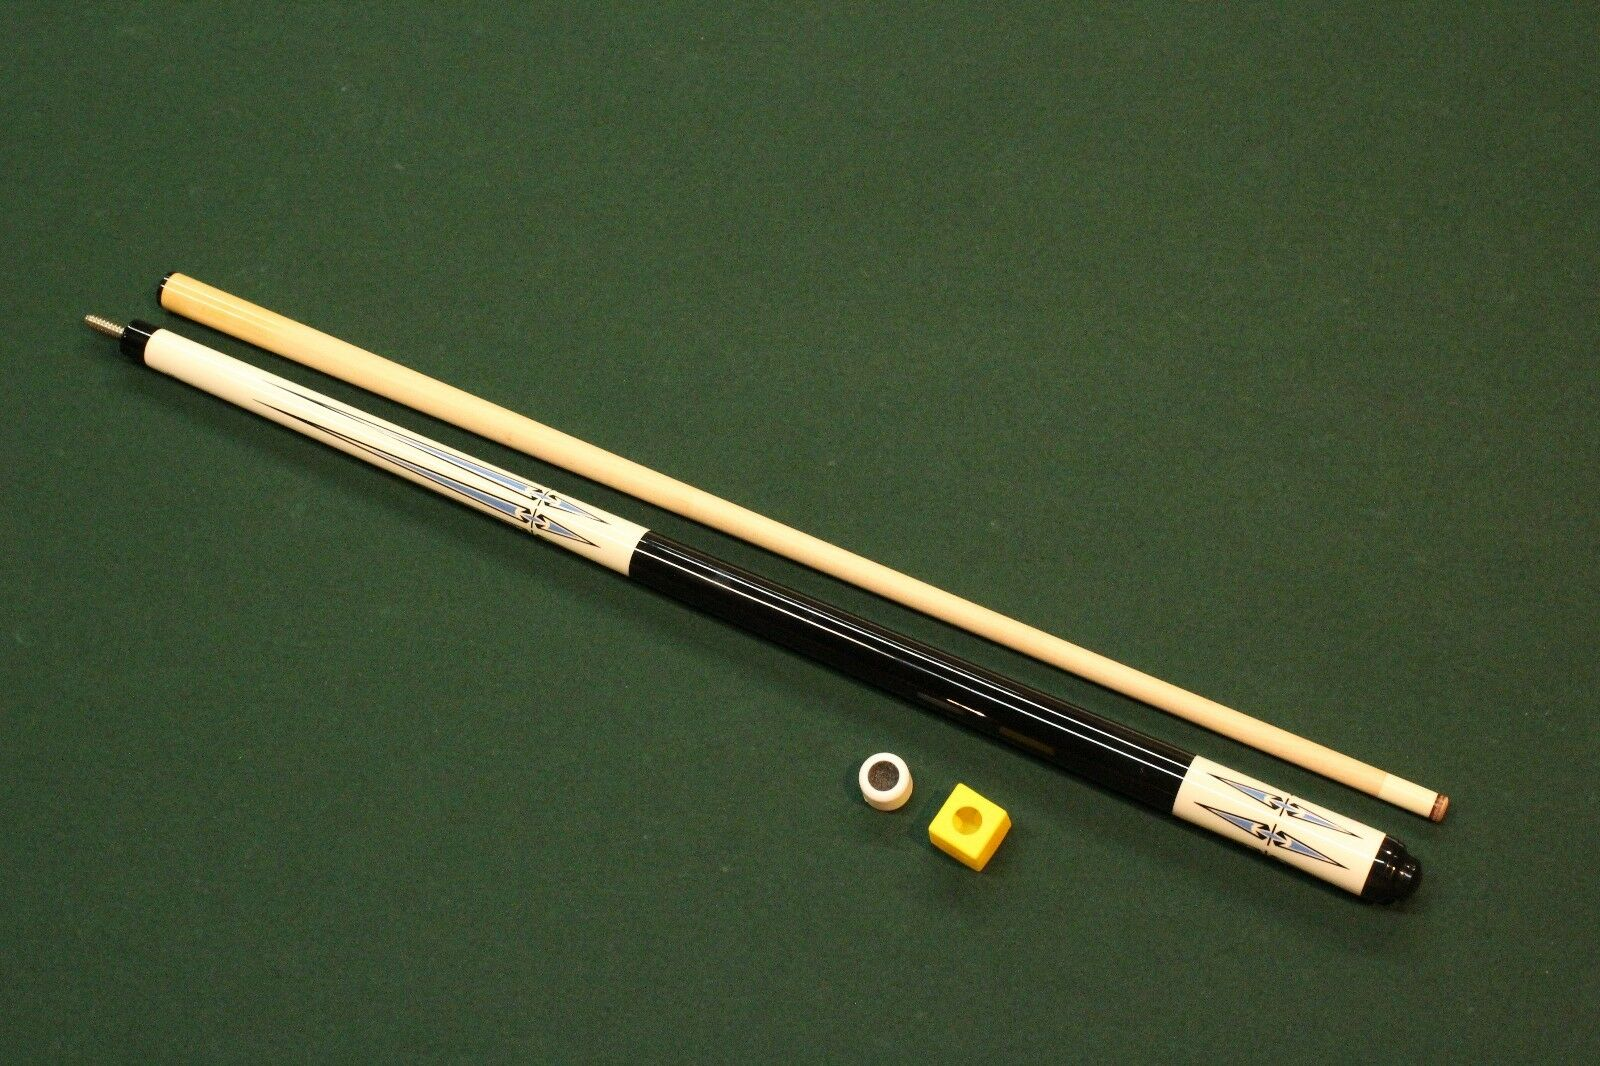 Brand New McDermott Pool Cue with Free Soft Case Accessories